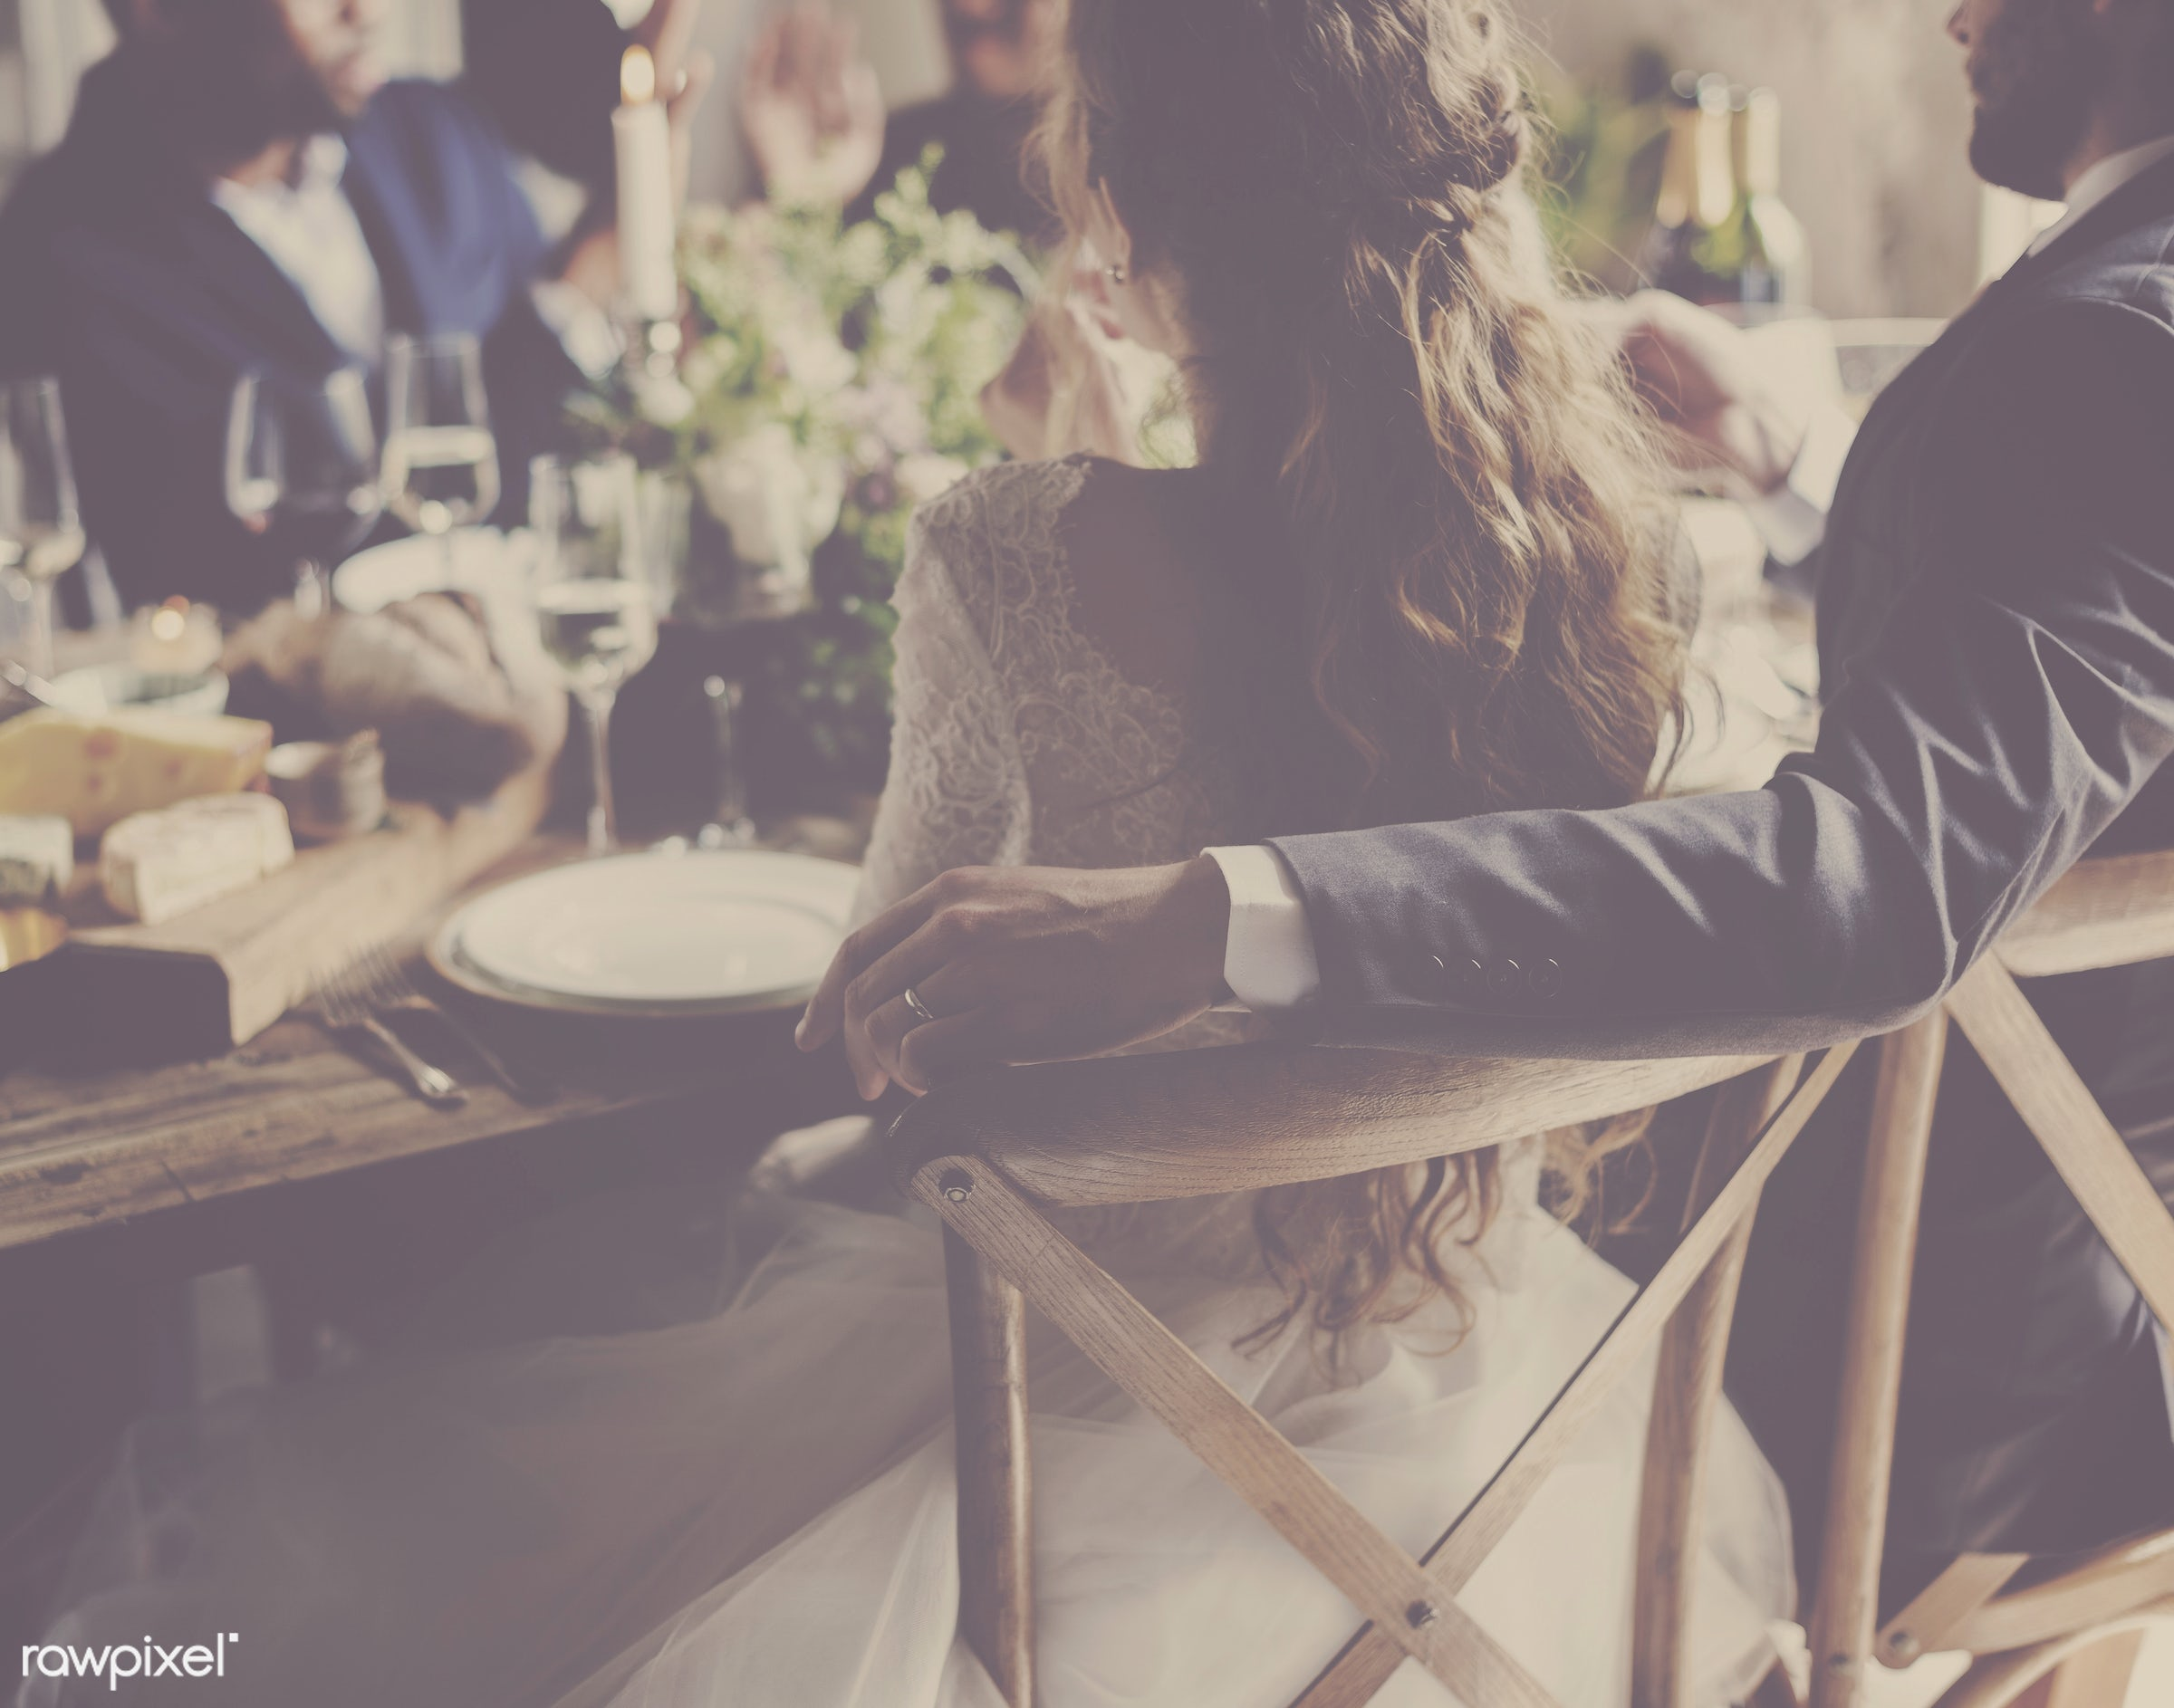 person, occasion, people, together, love, friends, married, hands, woman, event, gather, couple, men, bride, celebrate, man...